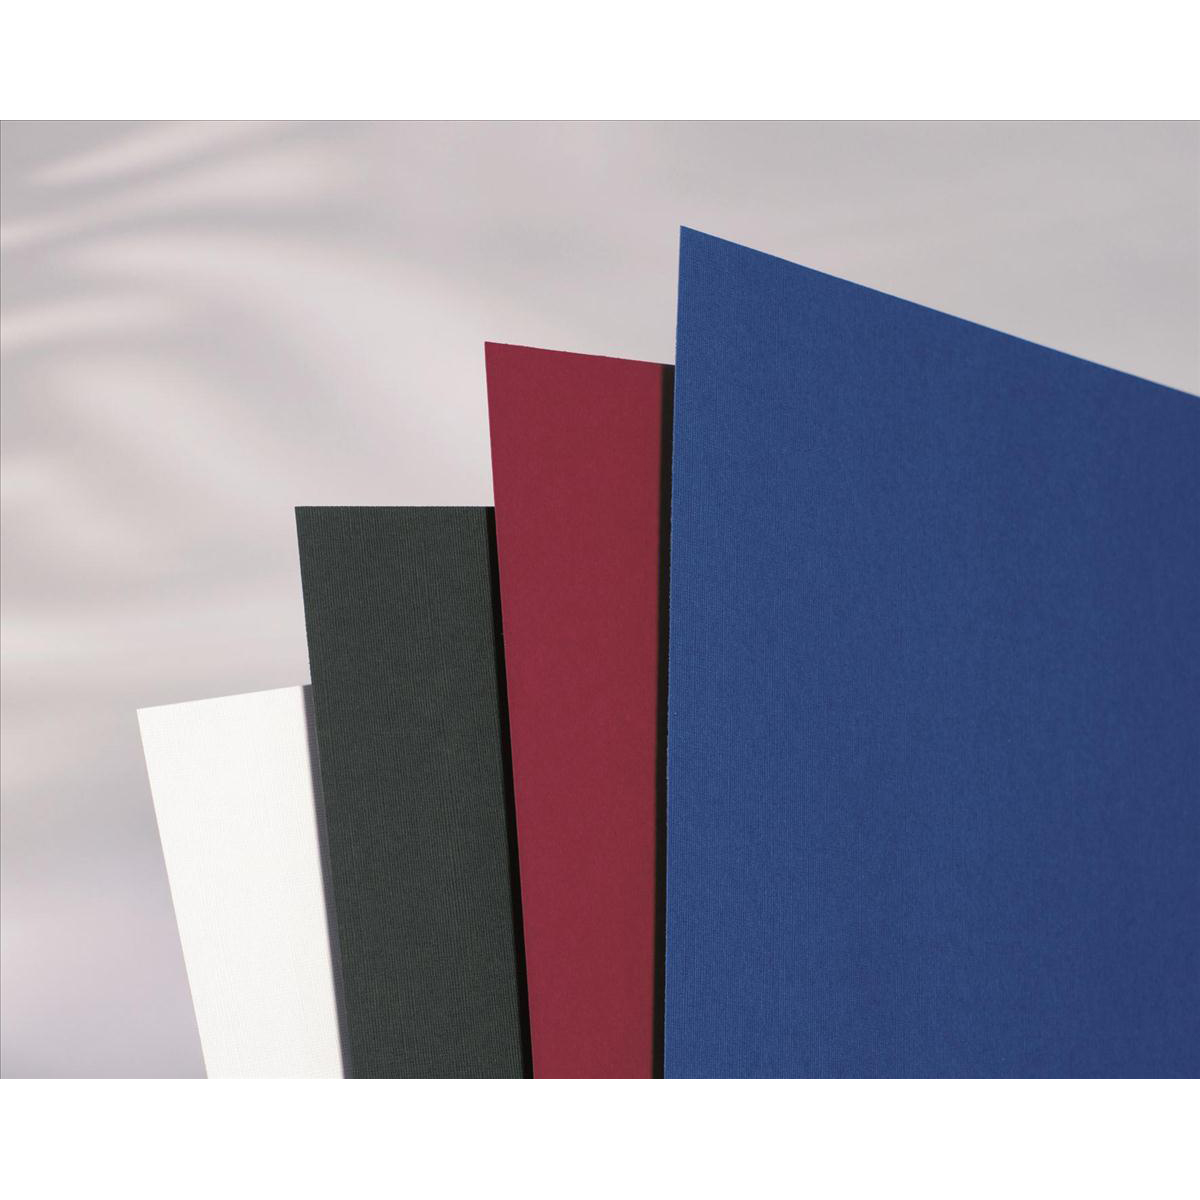 GBC Binding Covers Textured Linen Look 250gsm A4 Blue Ref CE050029 Pack 100